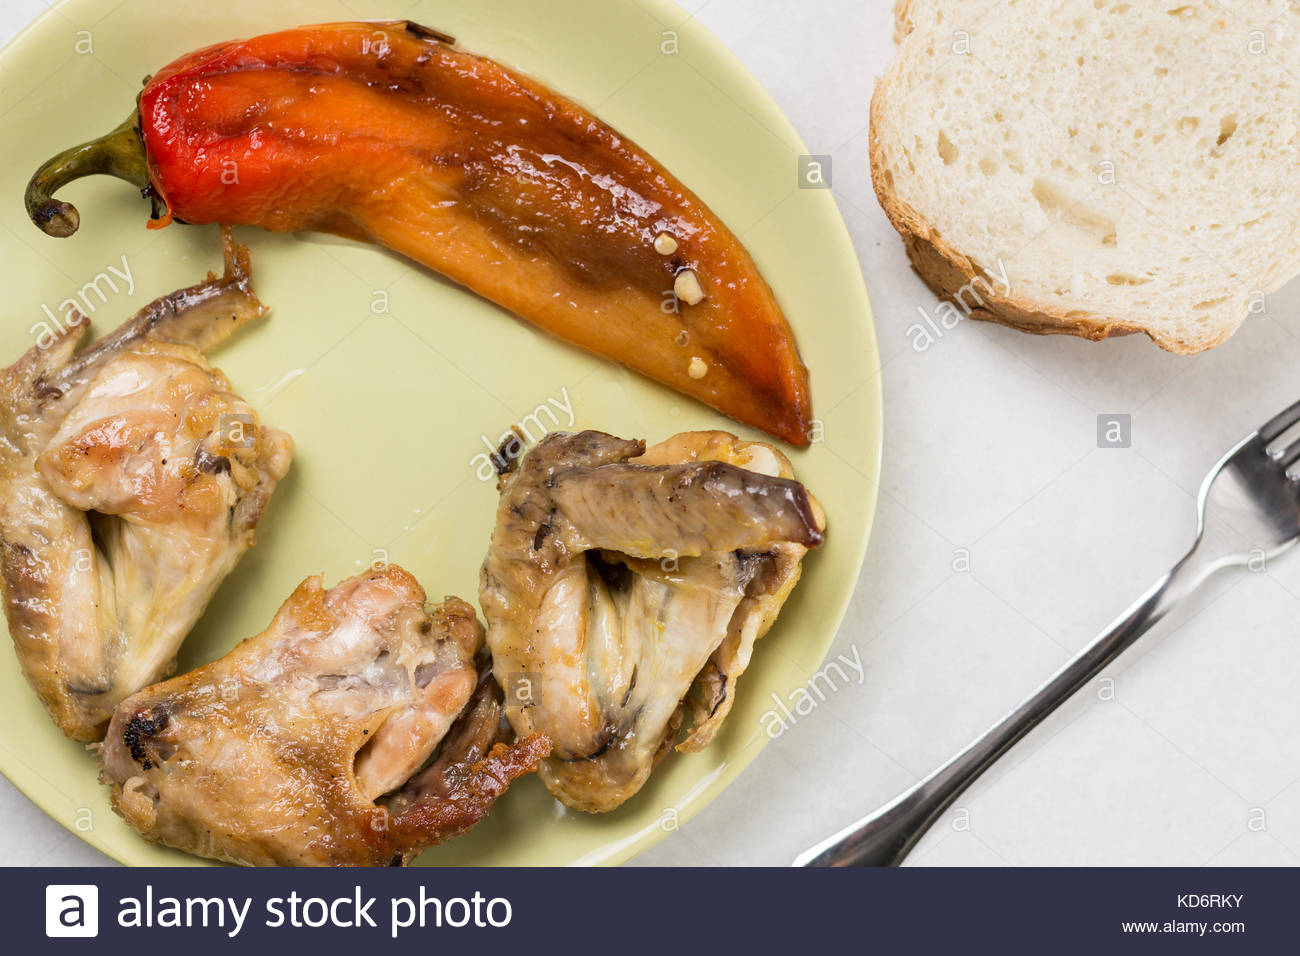 Flat lay above fried chicken wings with fried paprika served on the plate with bread and fork. Stock Photo